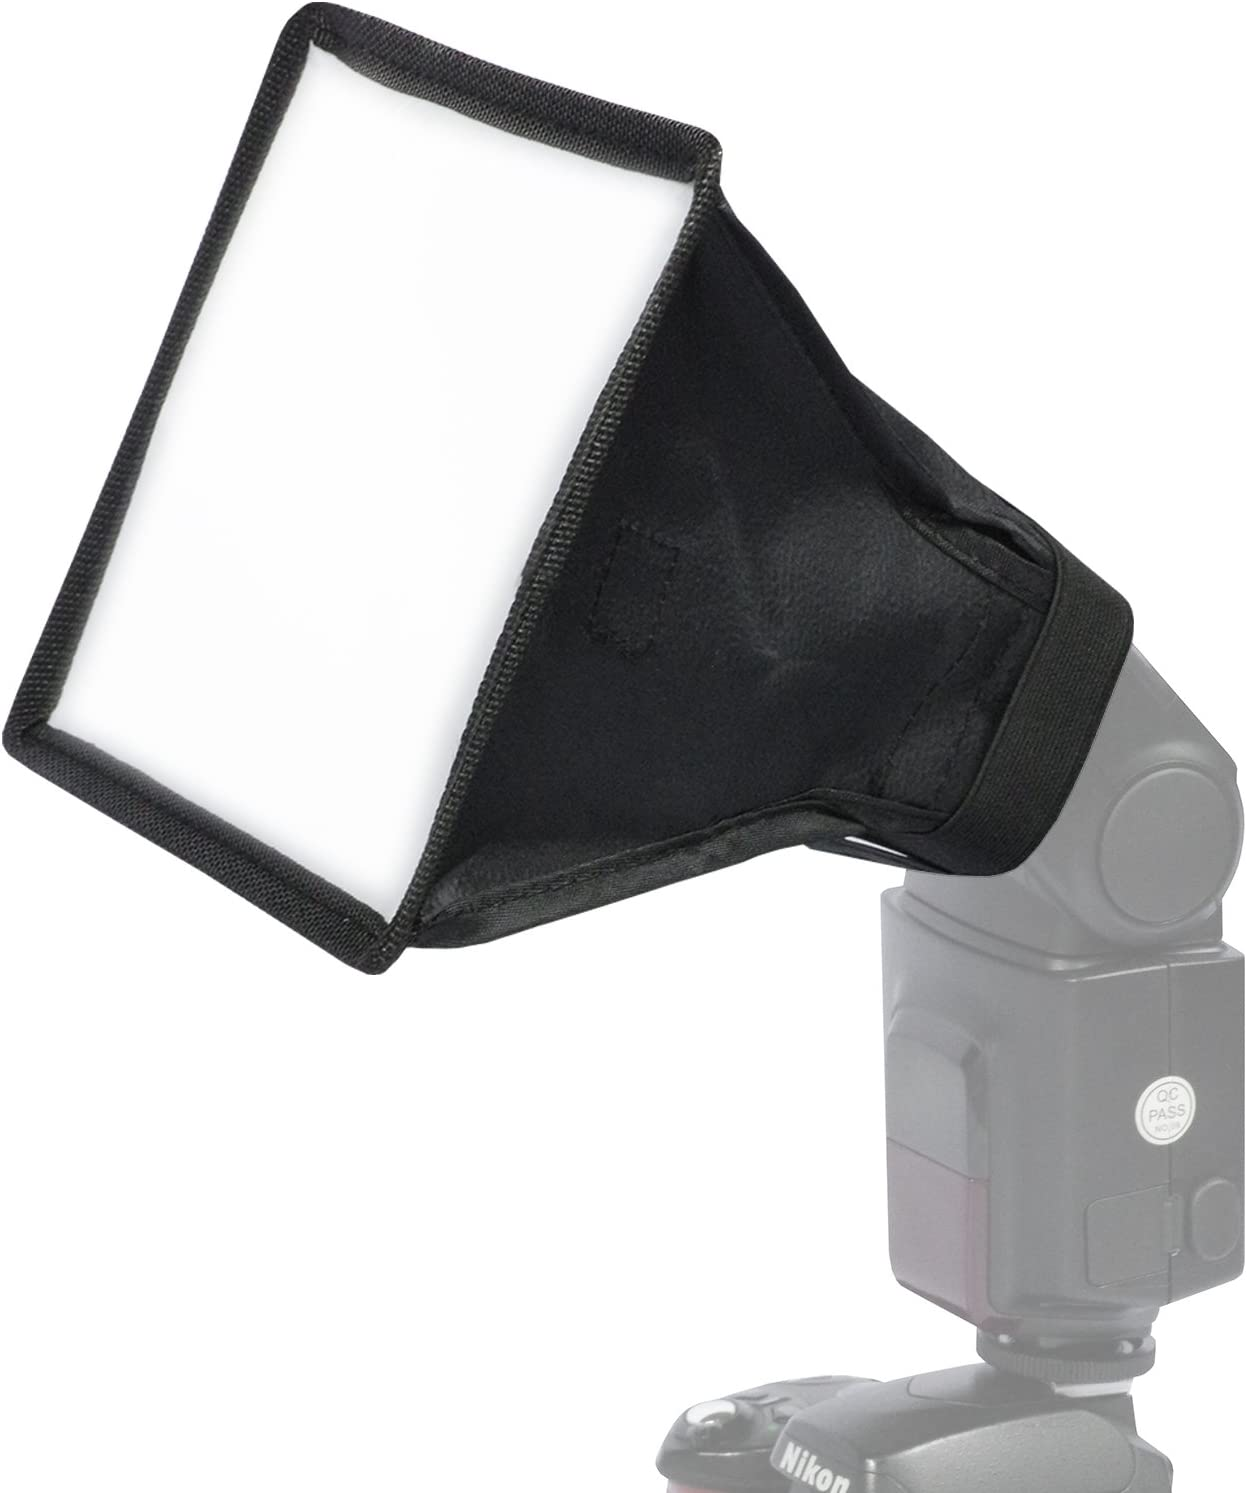 Julius Studio Collapsible Light Diffuser Cover JSAG298 Mini Softbox for Camera Photo Video /& Flash Light with Velcro